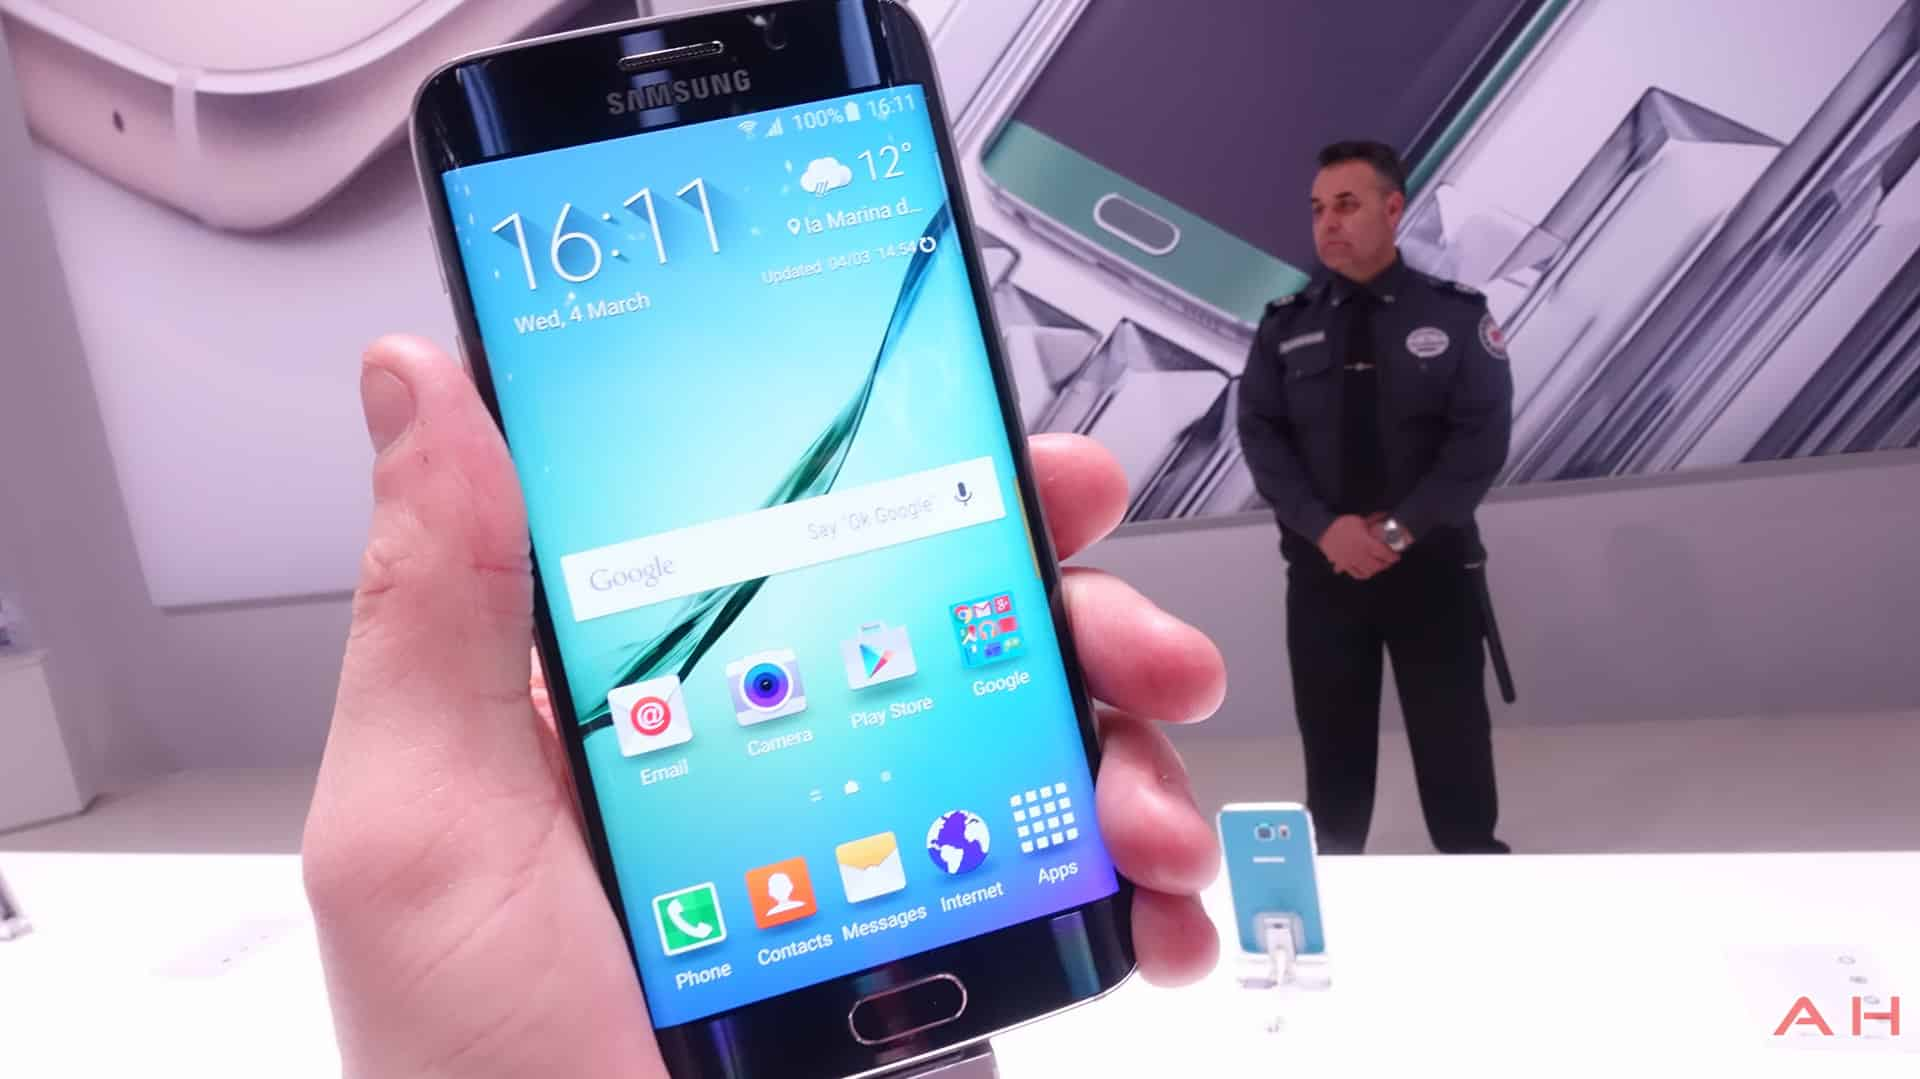 Samsung-Galaxy-S6-Edge-AH-14